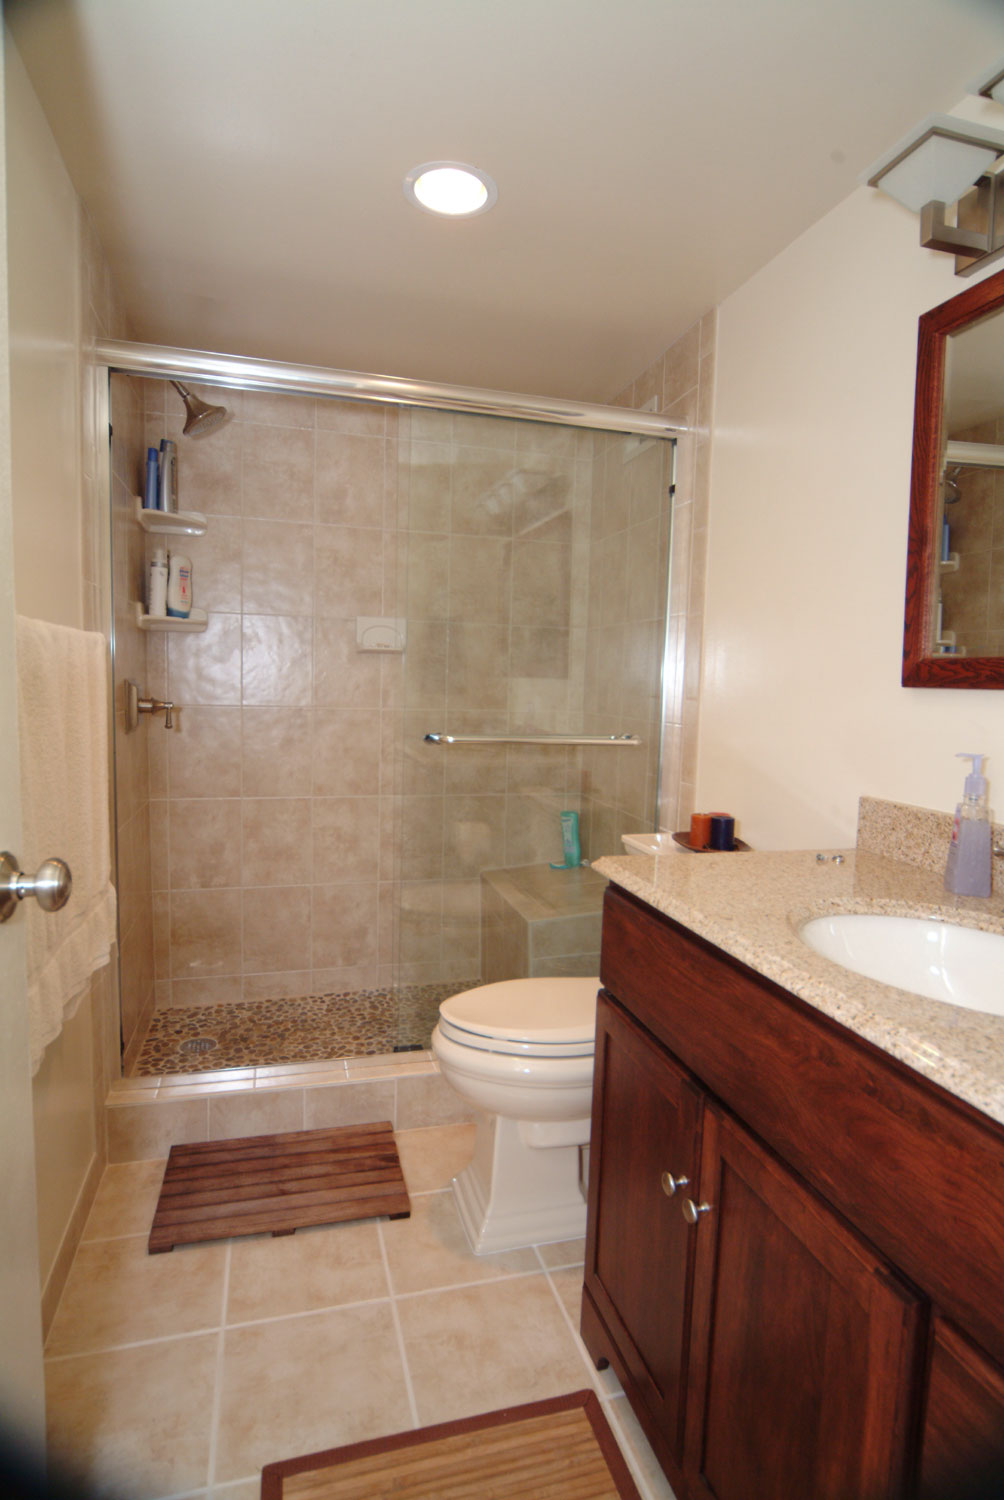 Bathroom remodeling montgomery co md handyman services Bathroom remodel maryland